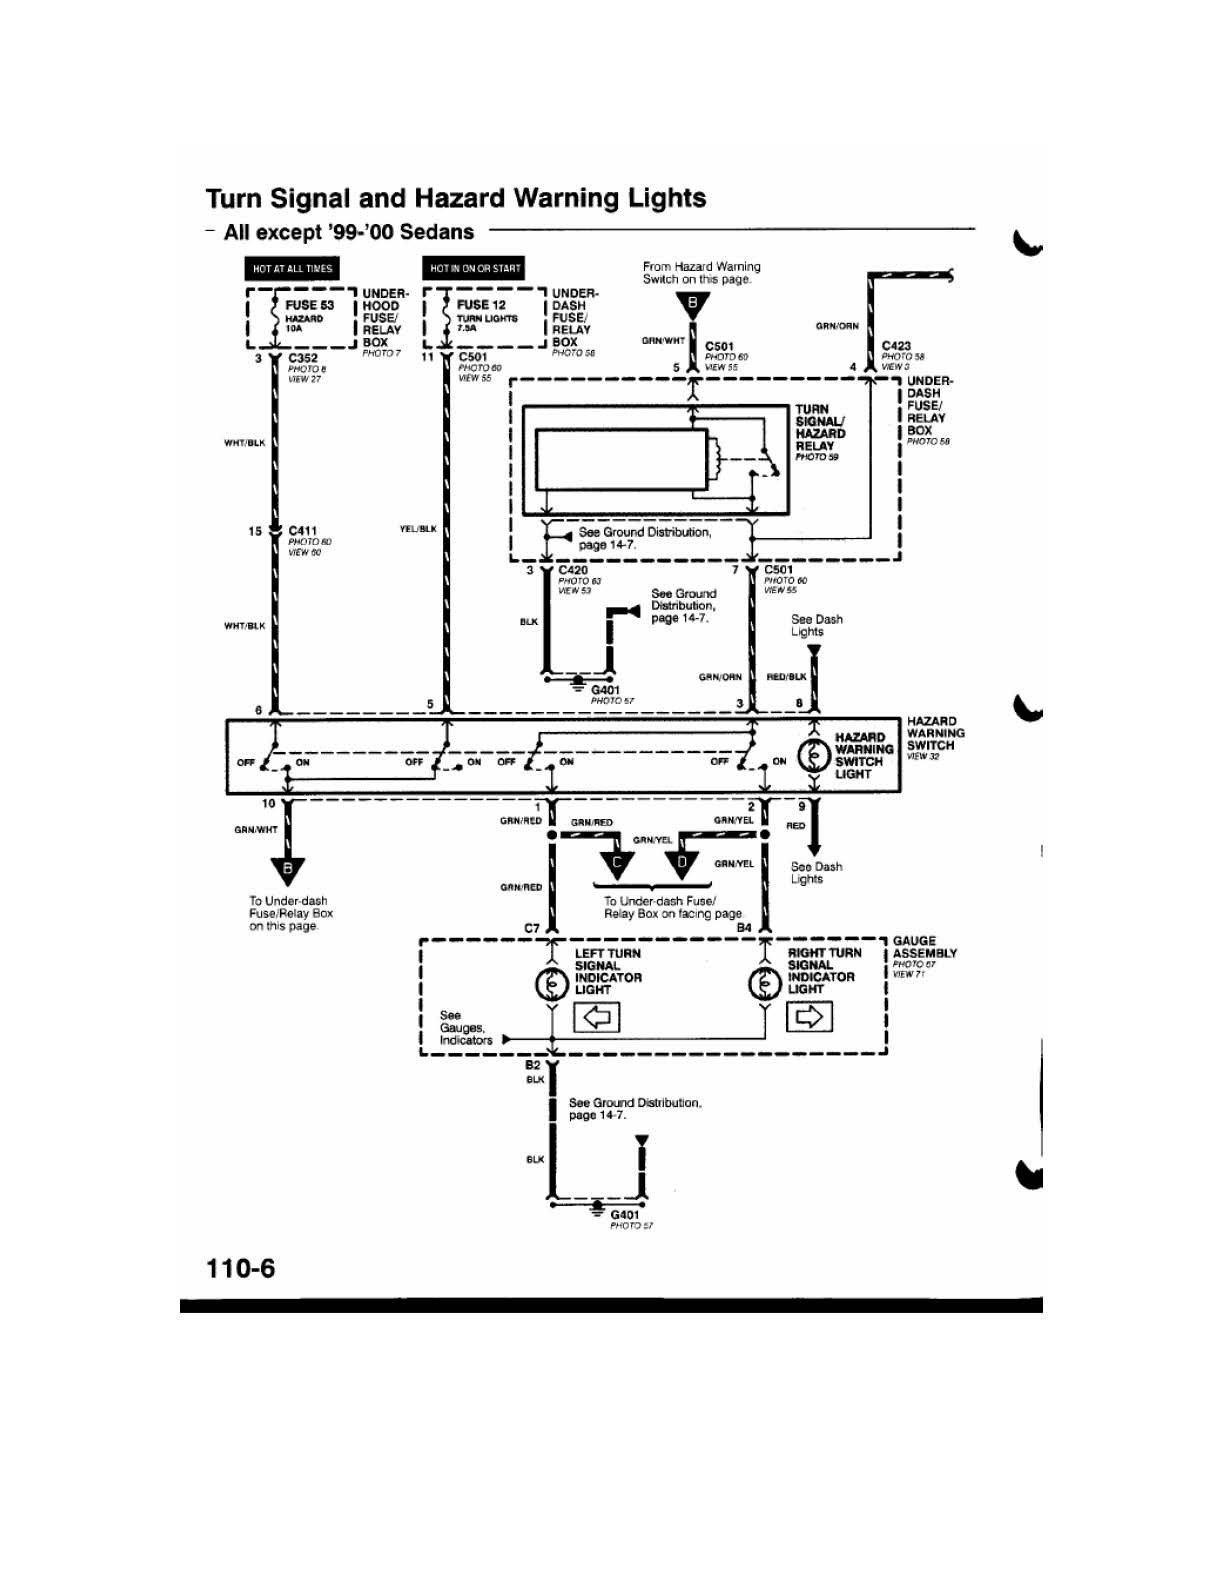 Led Turn Signal Wire Diagram 7 | Wiring Diagram - Badlands Turn Signal Module Wiring Diagram